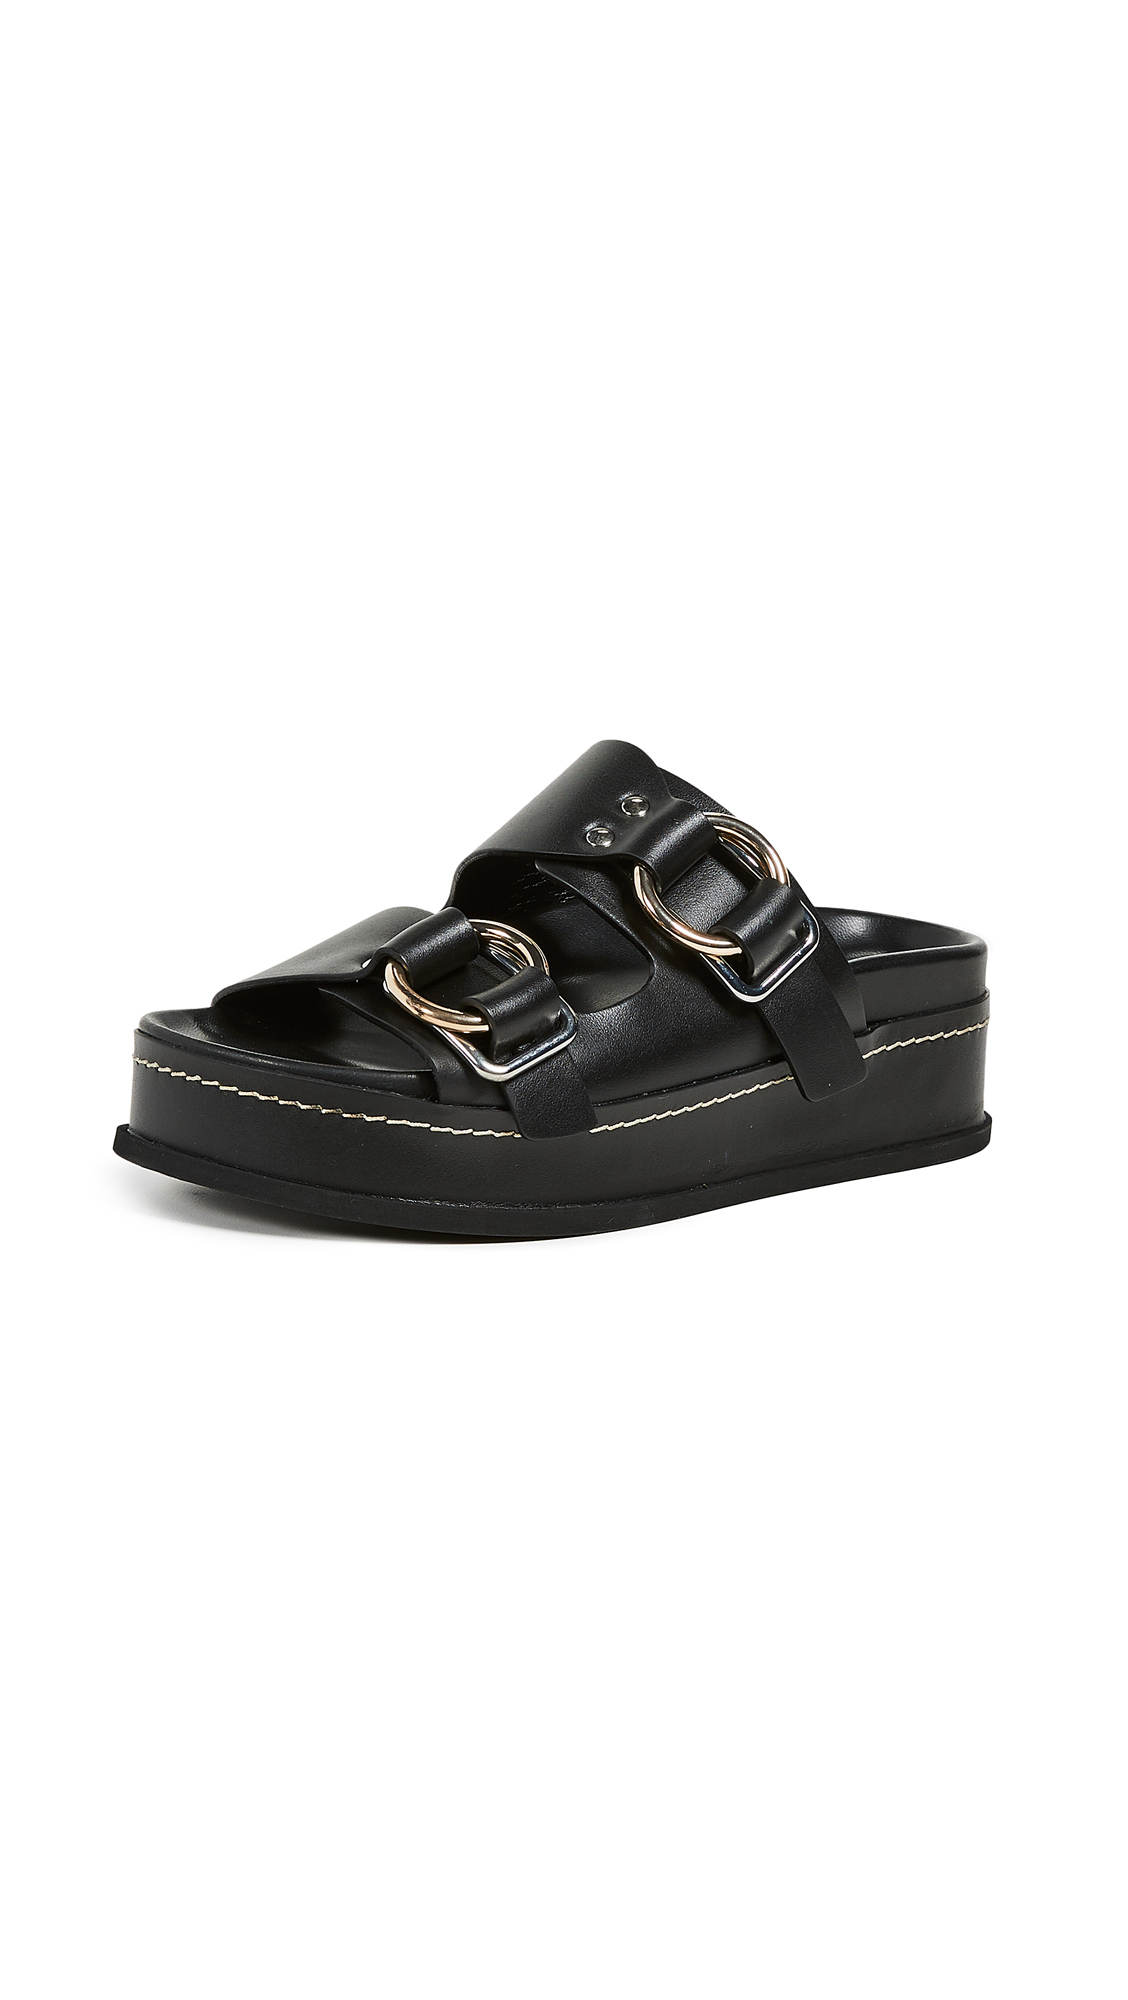 3.1 Phillip Lim Freida Platform Buckle Slides - Black